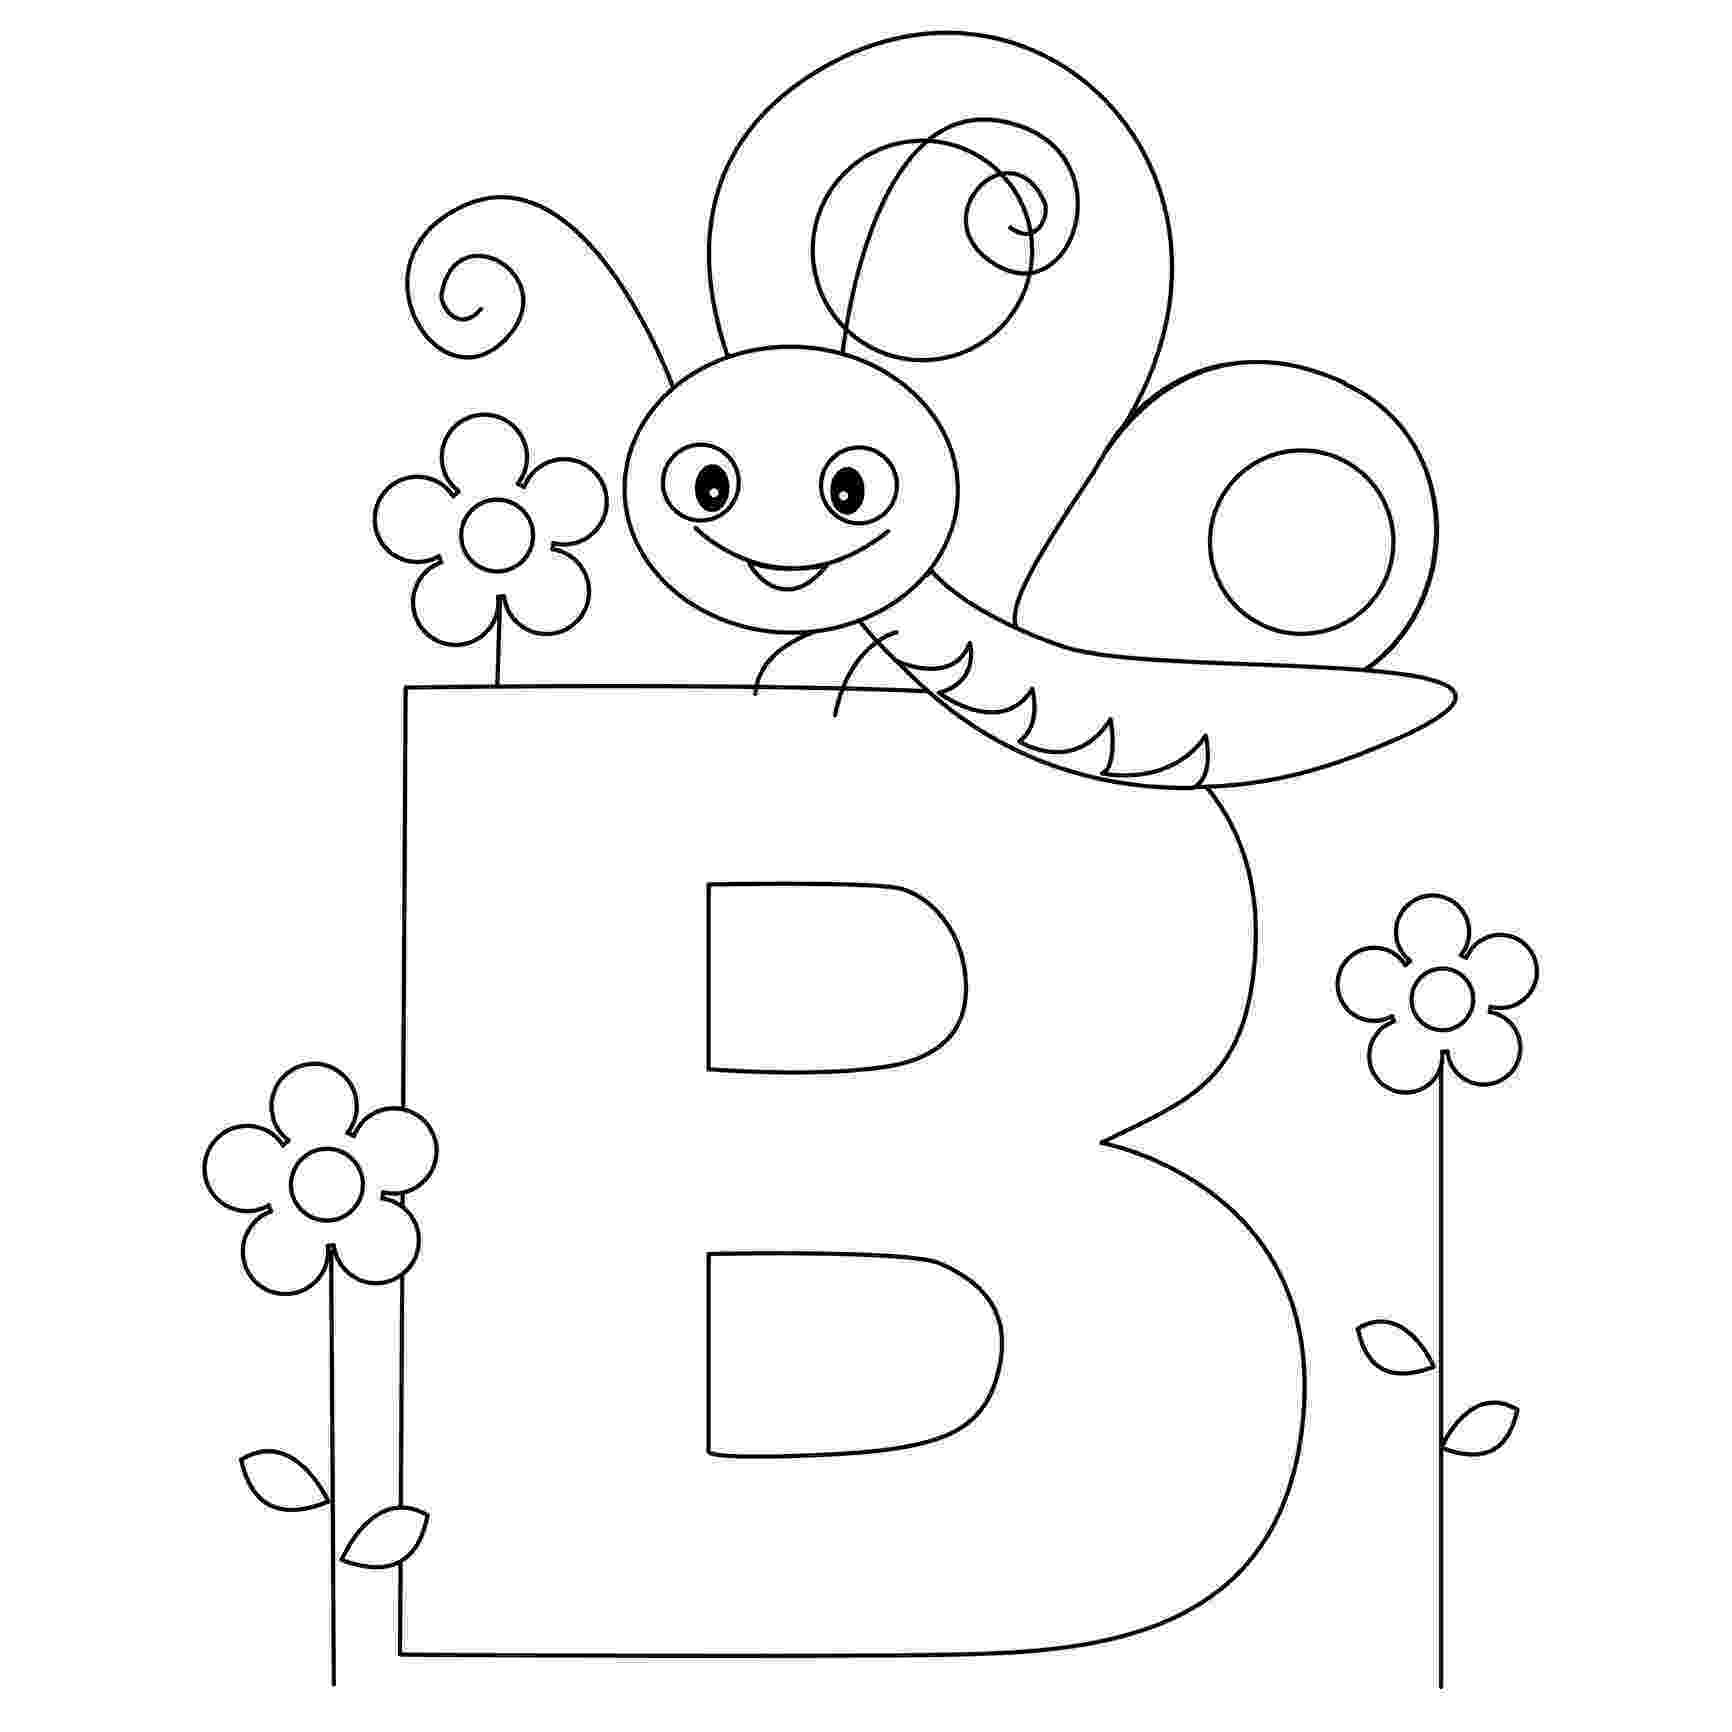 free alphabet coloring pages free printable alphabet coloring pages for kids best free pages coloring alphabet